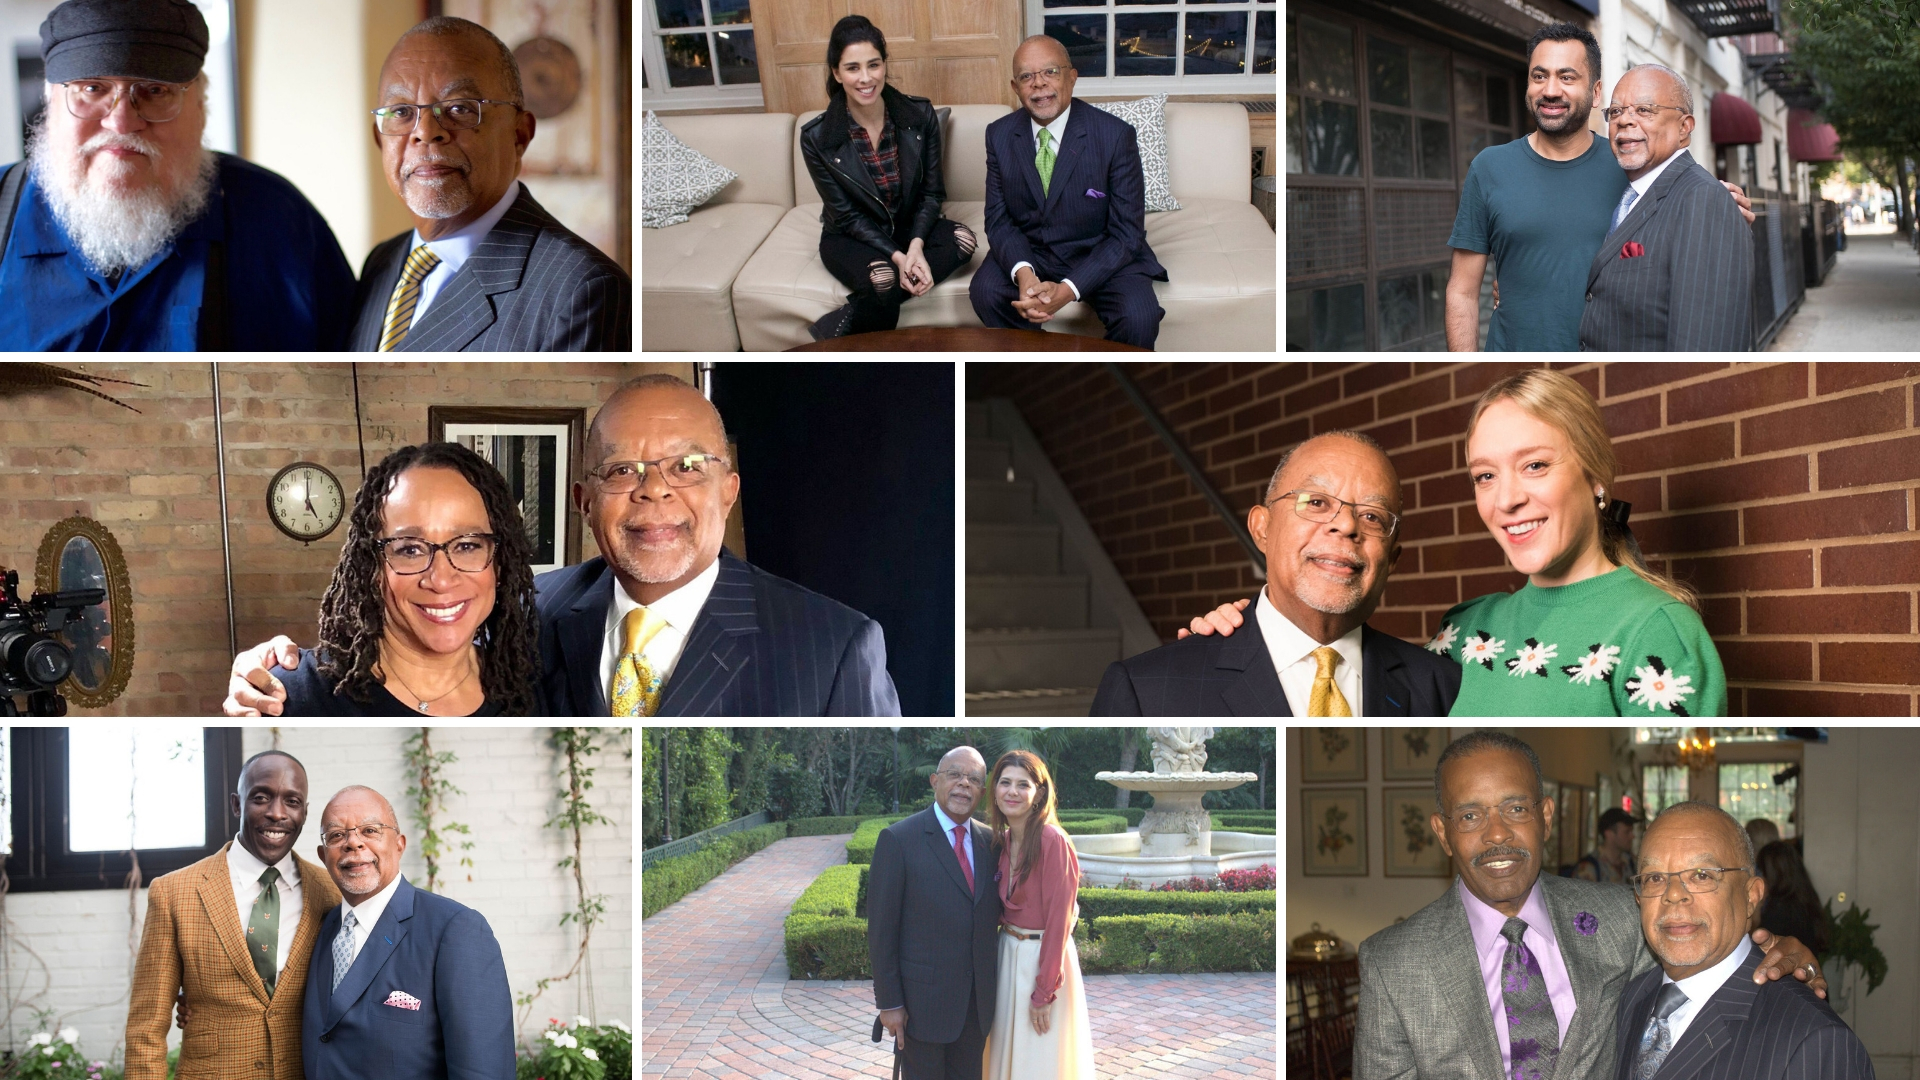 Home | Finding Your Roots